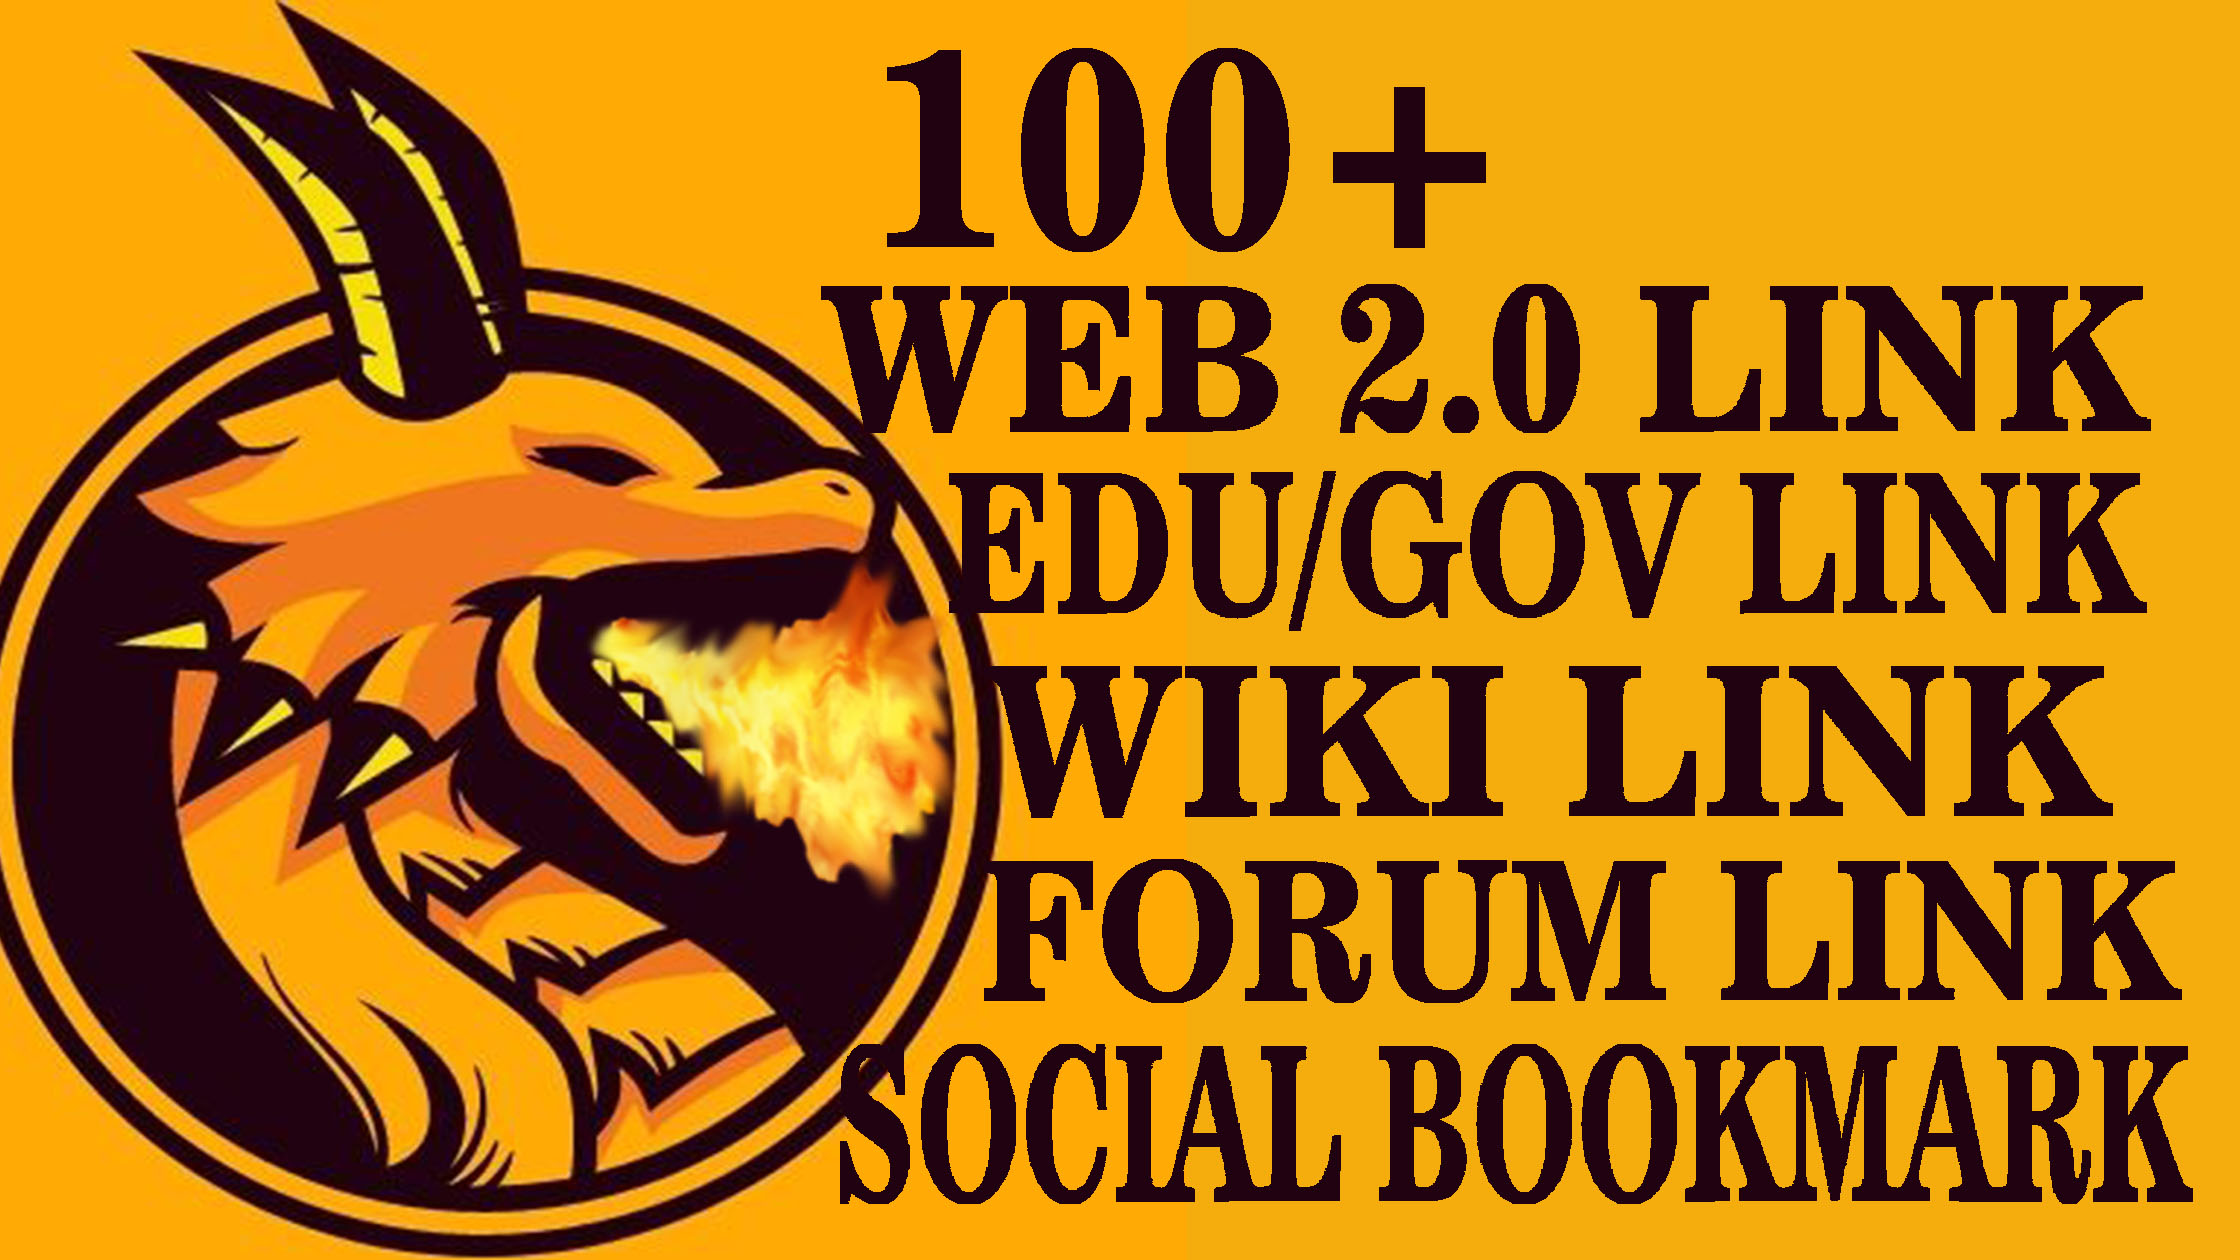 BUMPER PACKAGE, 100+ HIGH QUALITY WEB 2.0 LINK, EDU/GOV LINK, WIKI LINK, SOCIAL BOOKMARK & FORUM LINK